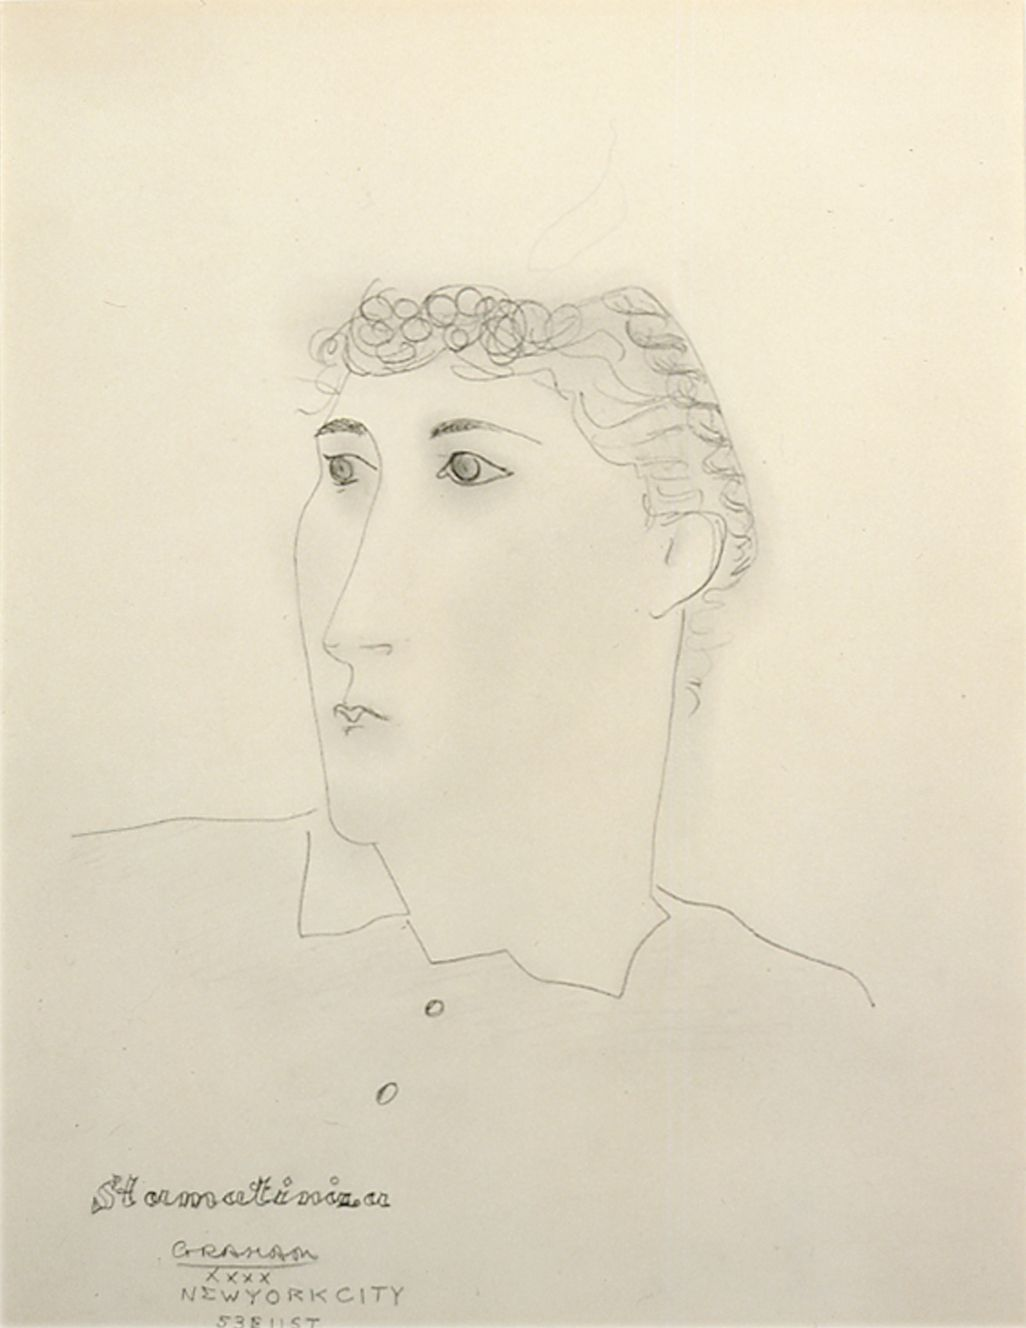 John Graham, Stormatinira, 1940, pencil on paper, 16 1/2 x 13 inches